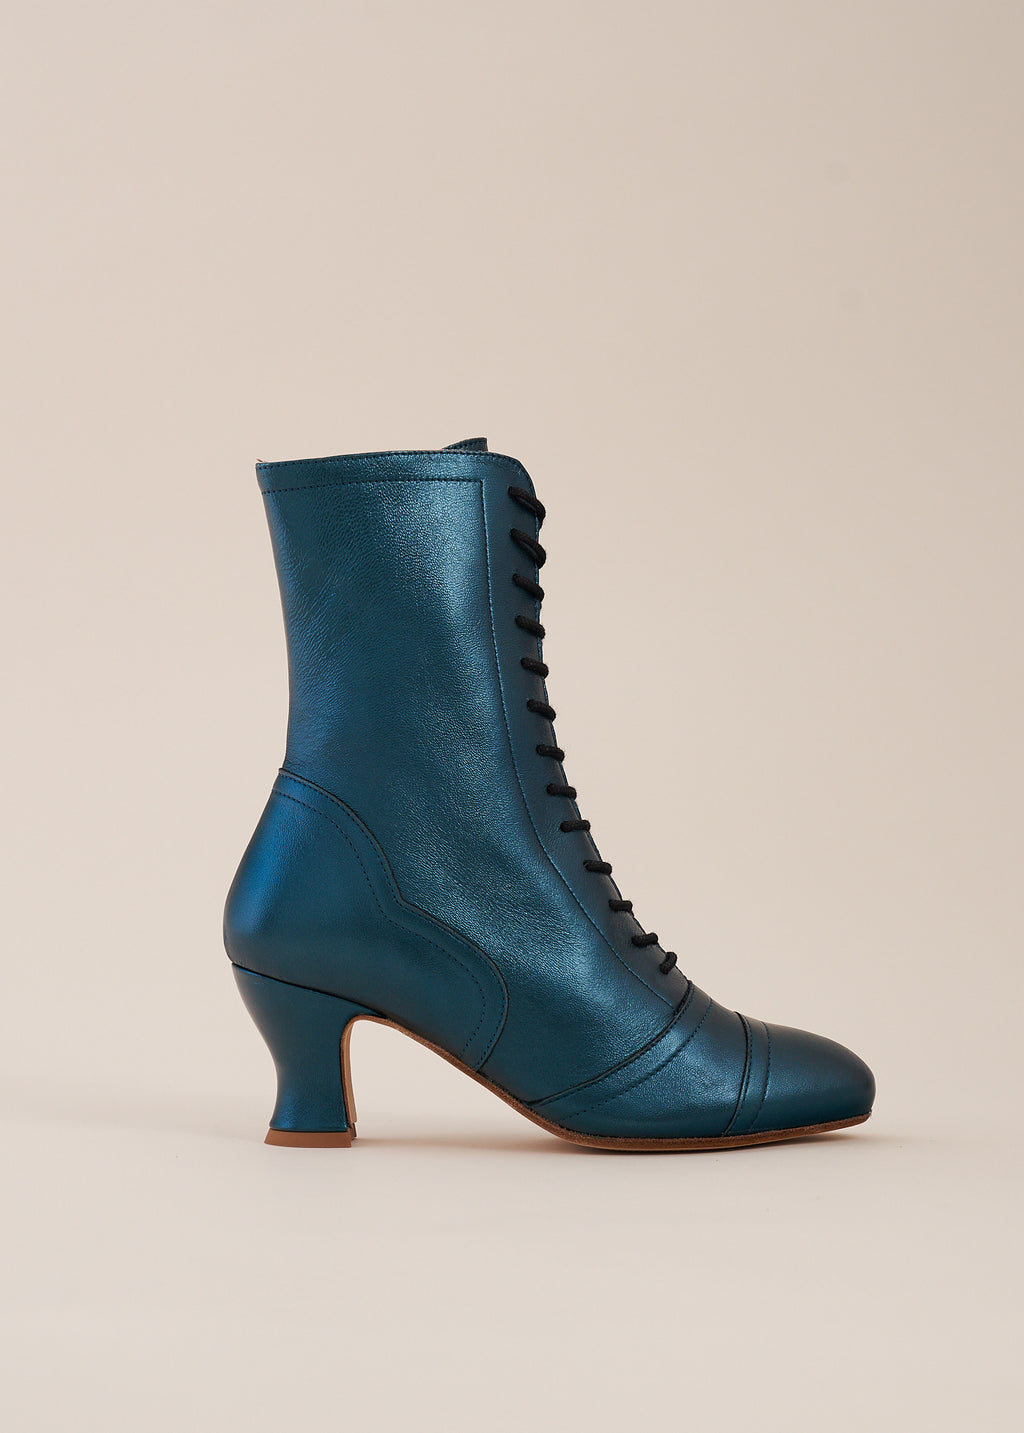 Frida Luxe Teal Metallic Leather Lace up Boots